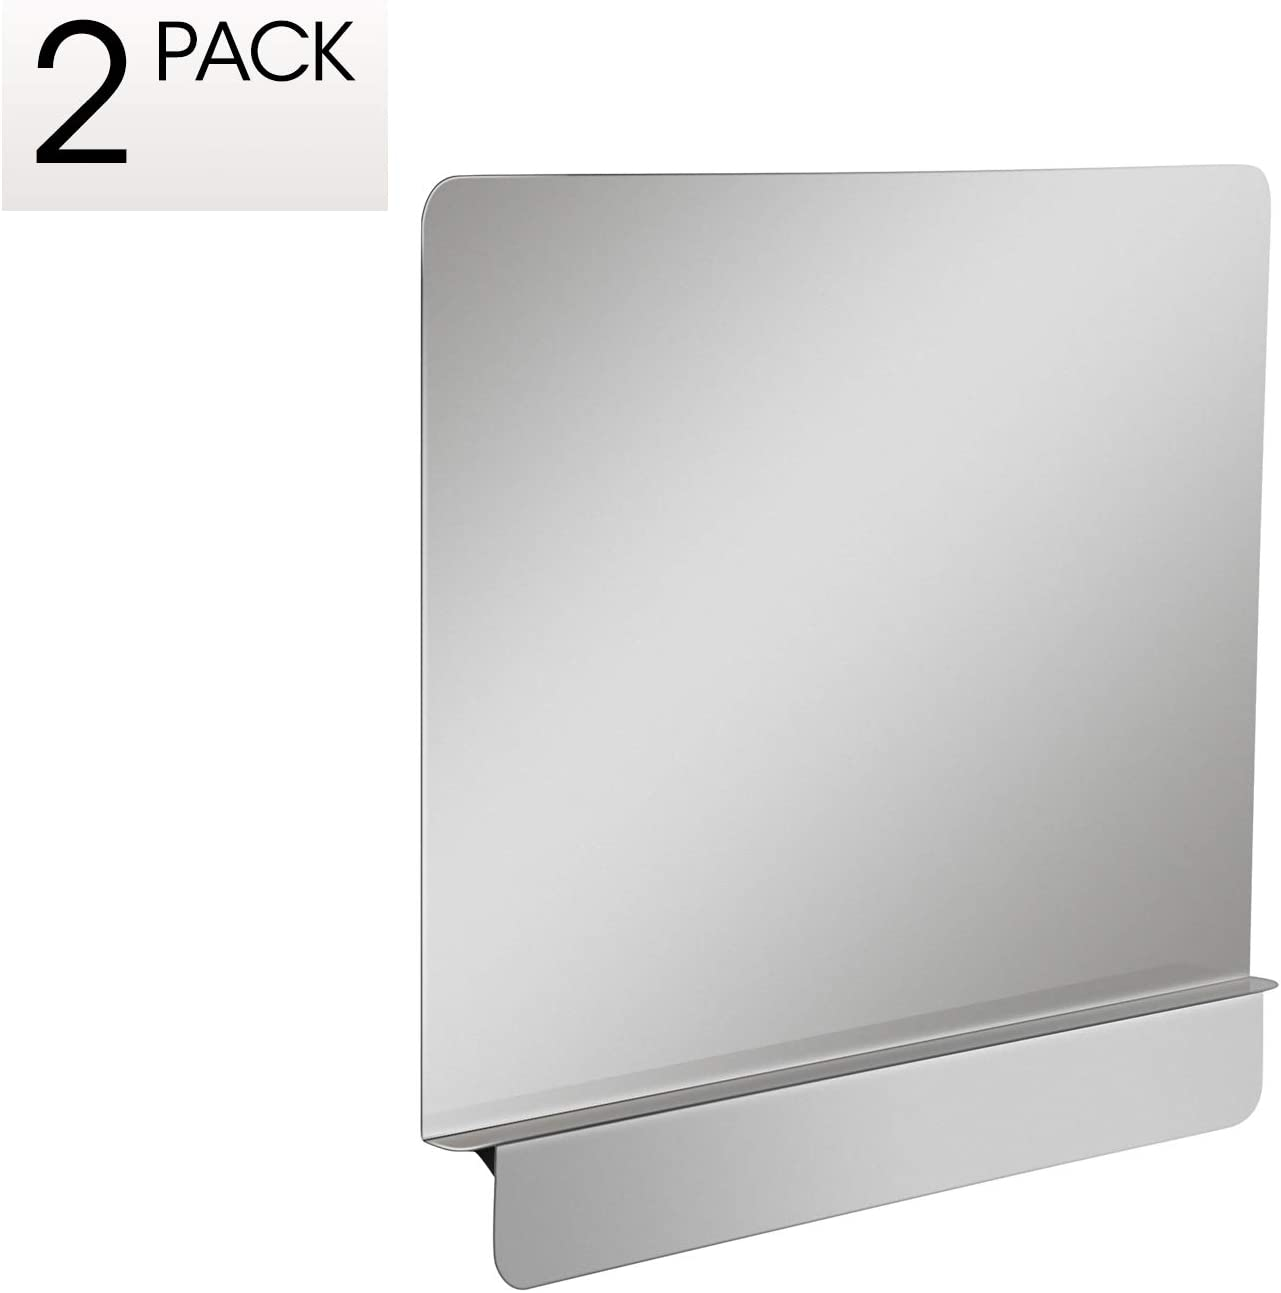 """Zipcase 2 packs Stainless Steel 20-1/2"""" W x 18"""" H Universal Side Splash for Commercial Fryers fitting 0.5"""" - 1"""" Side, Pack of 2"""